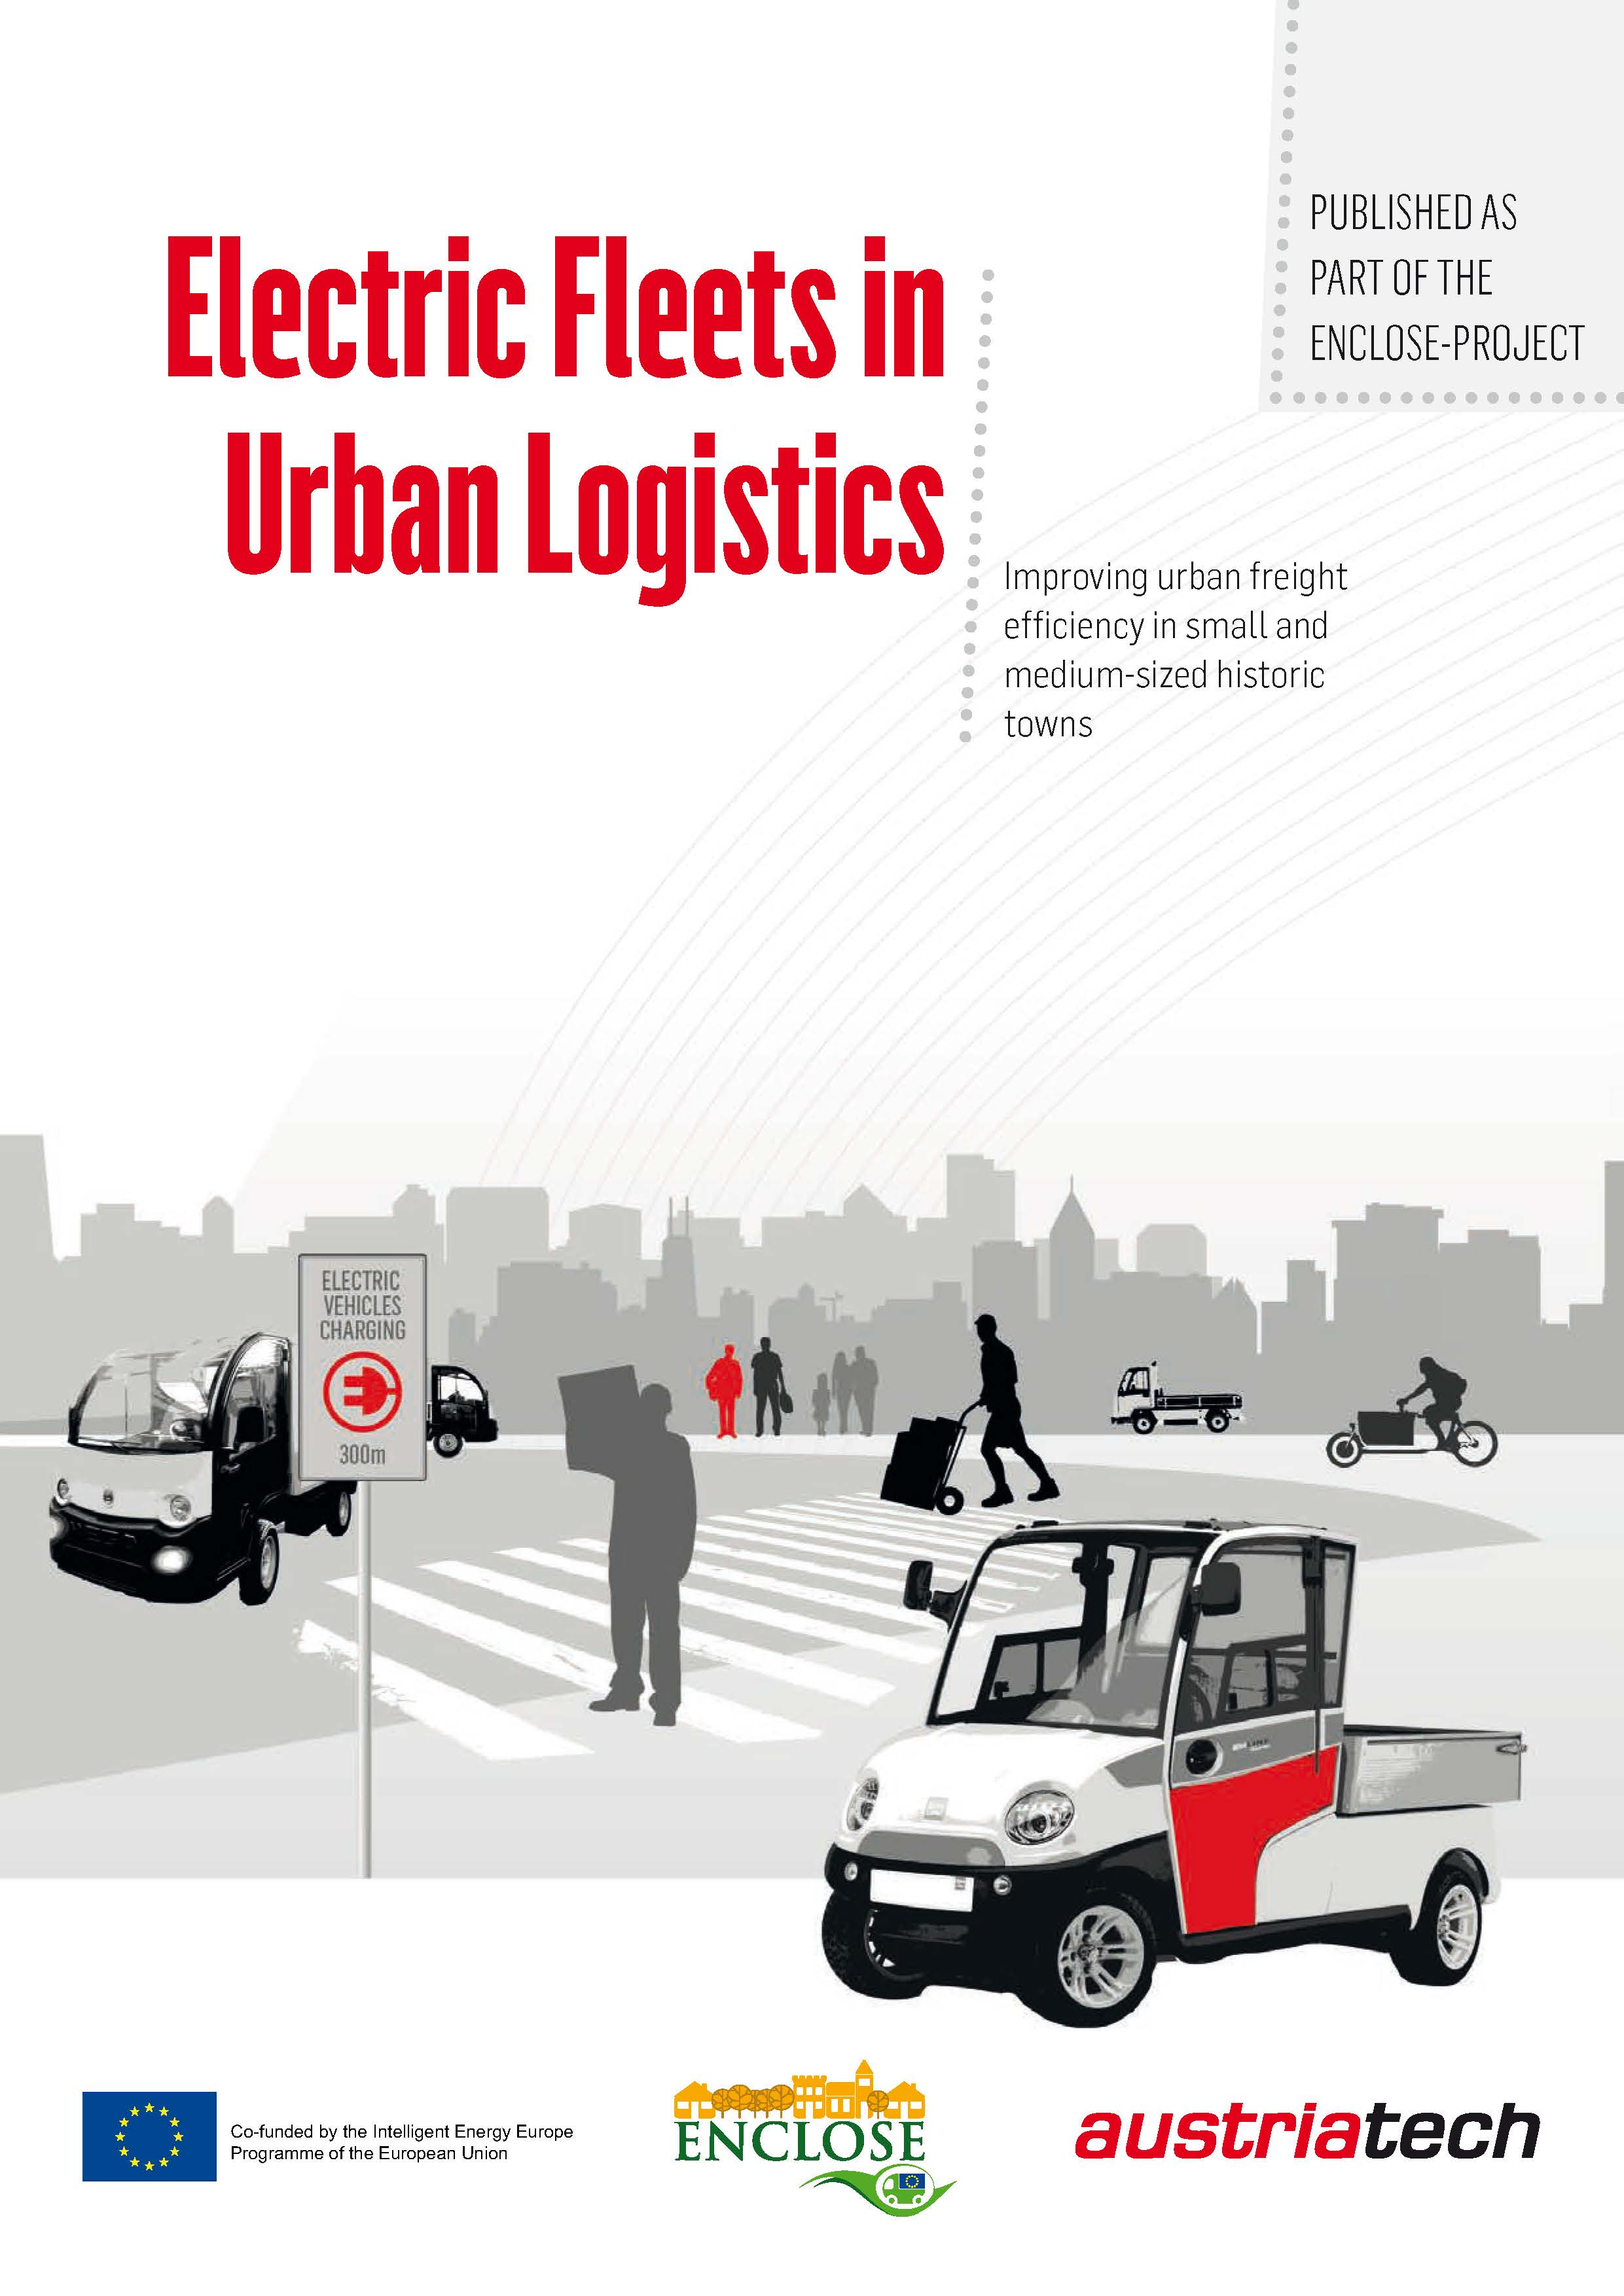 Electric Fleeds in Urban Logistics 2014 Seite 01